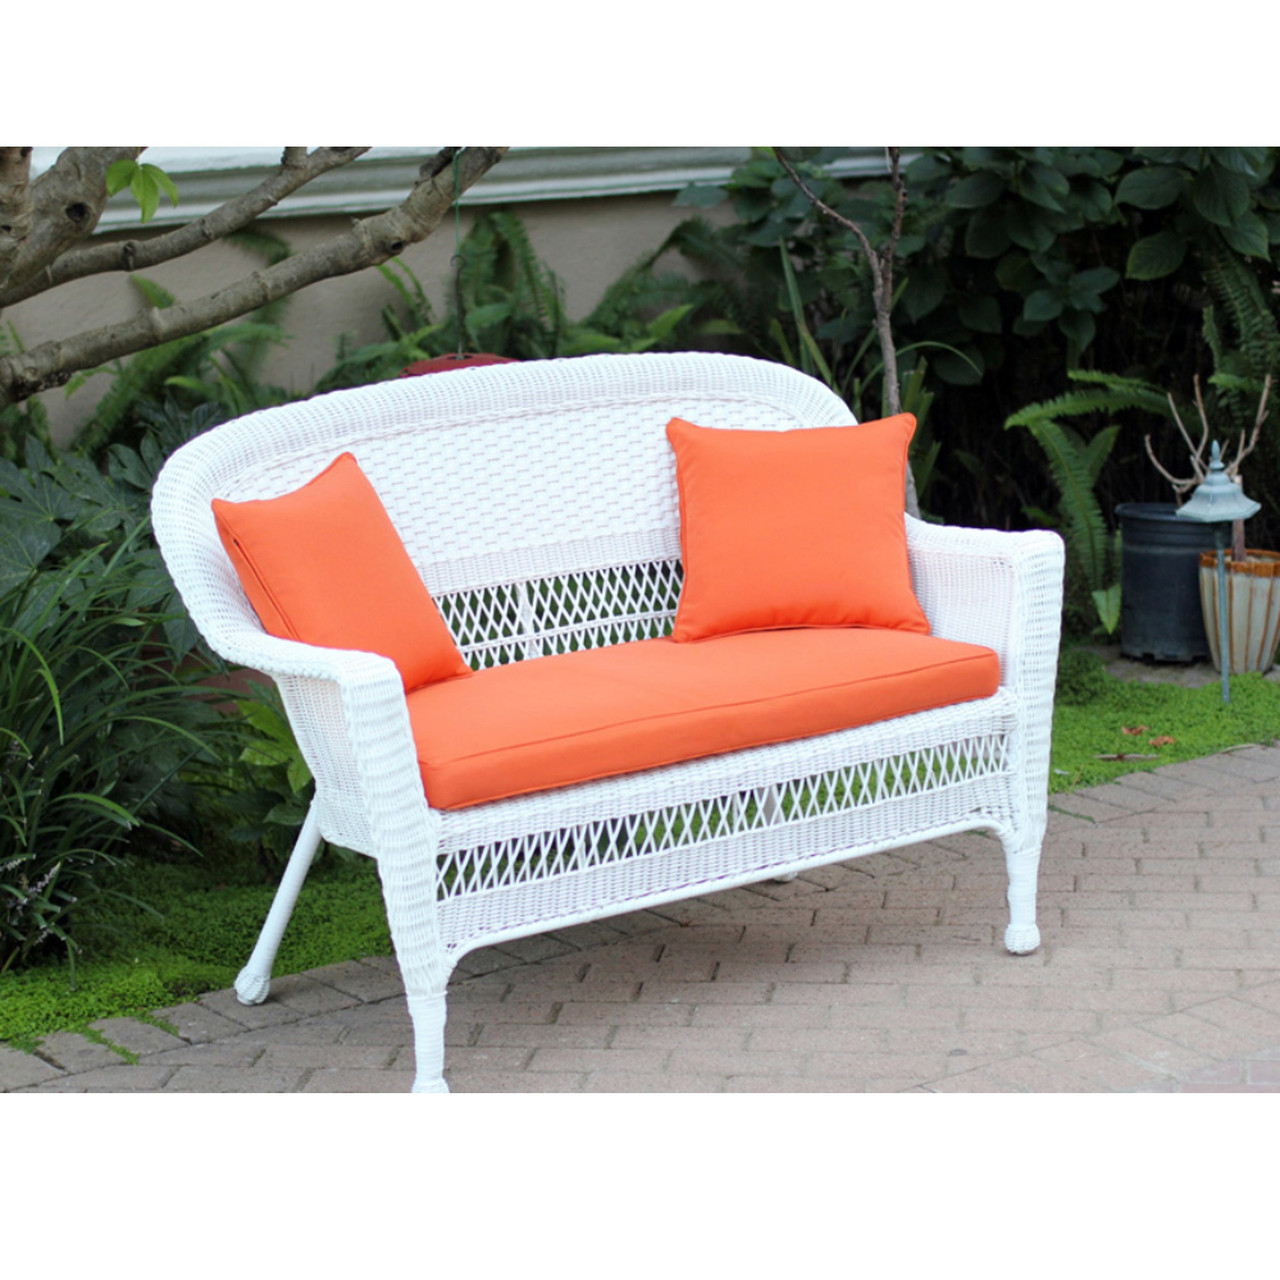 Super 51 Jasmine White Resin Wicker Patio Loveseat Tangerine Orange Cushion And Pillows 31556311 Inzonedesignstudio Interior Chair Design Inzonedesignstudiocom